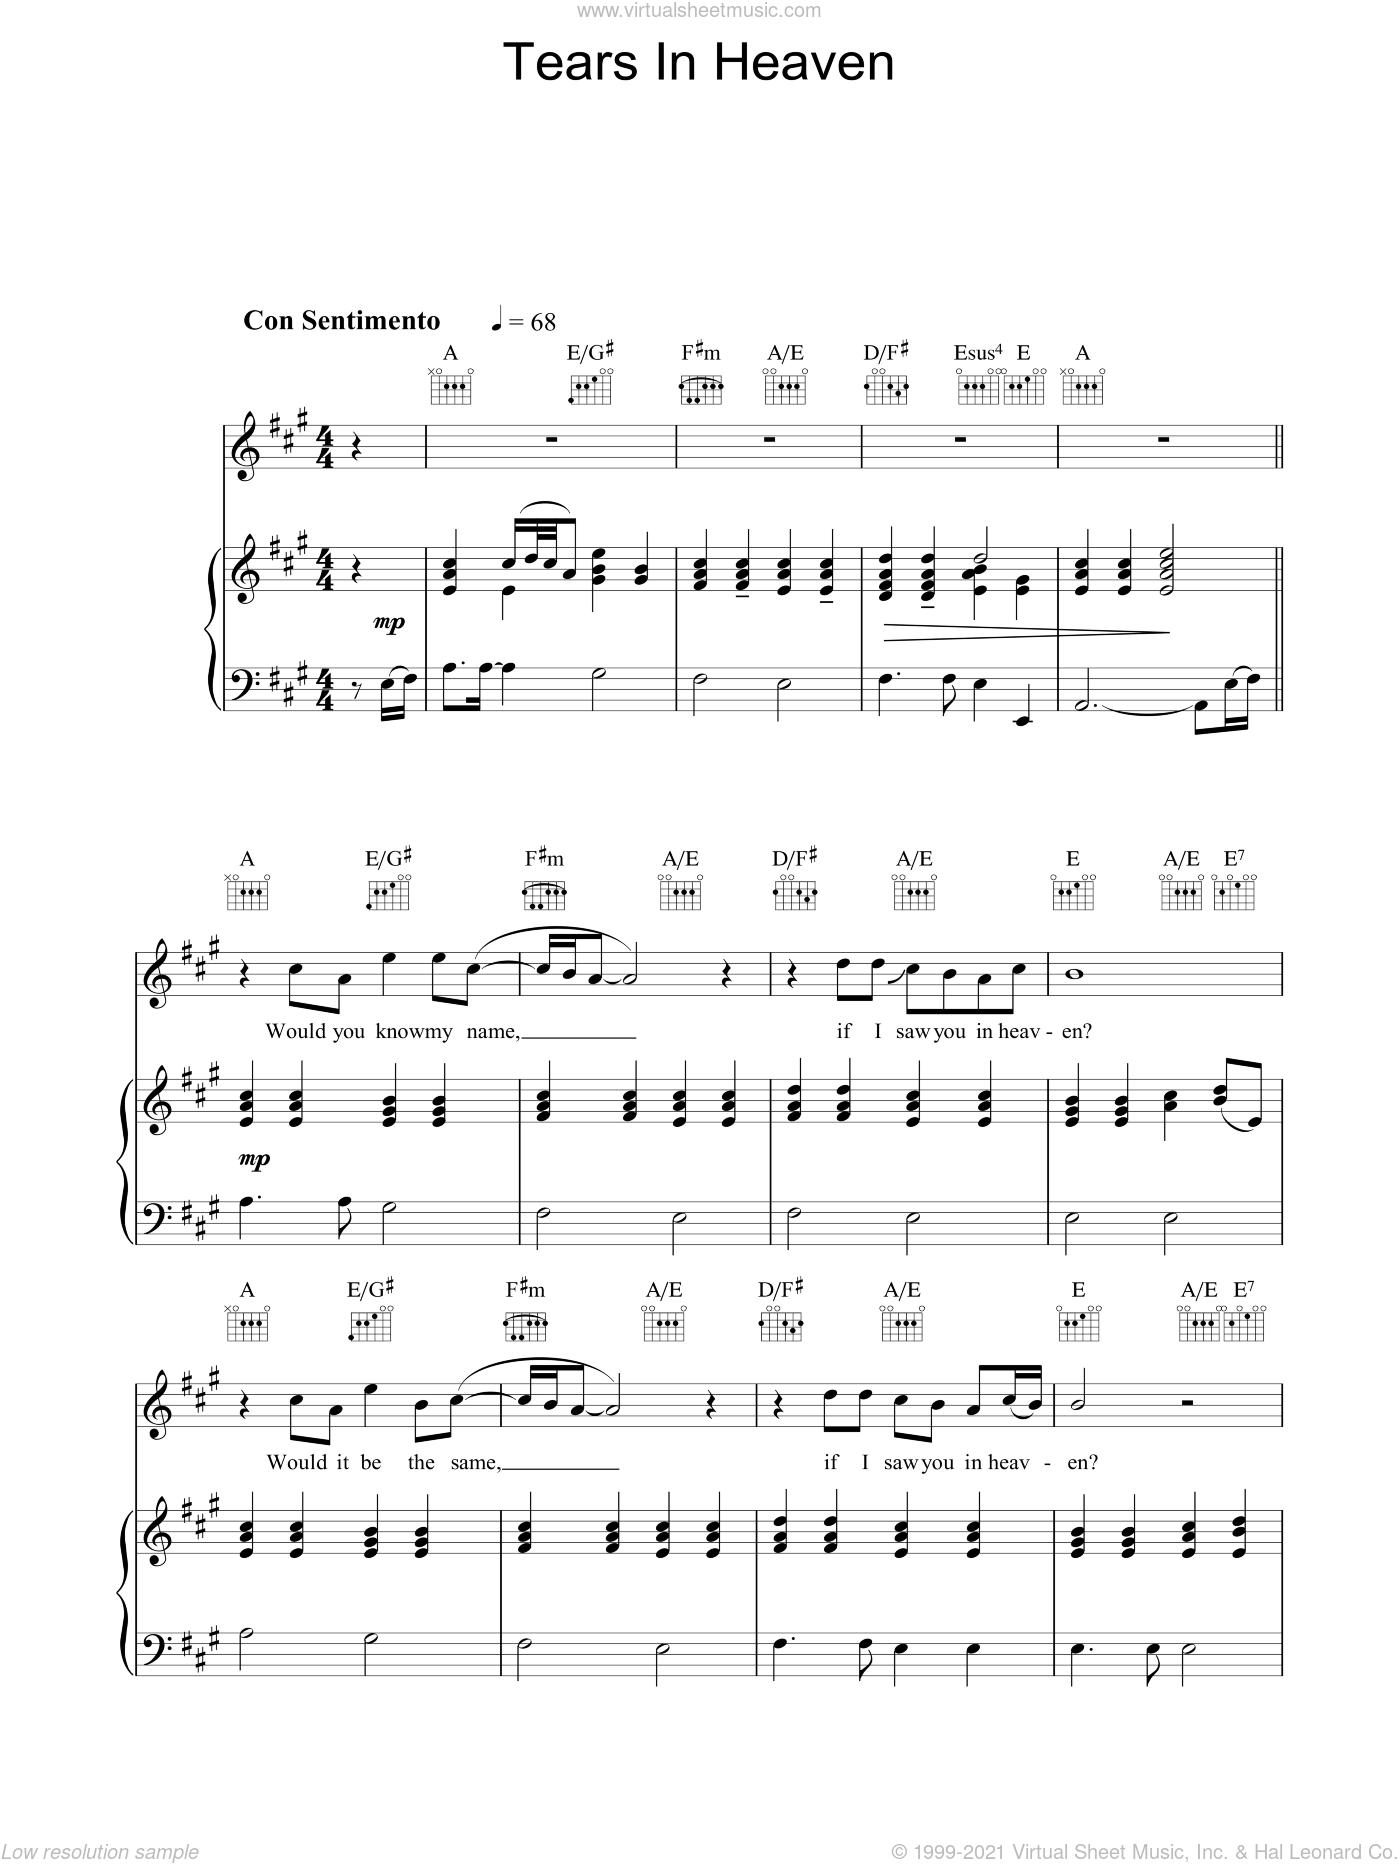 Tears In Heaven sheet music for voice, piano or guitar by The Choirboys, Eric Clapton and Will Jennings, intermediate skill level